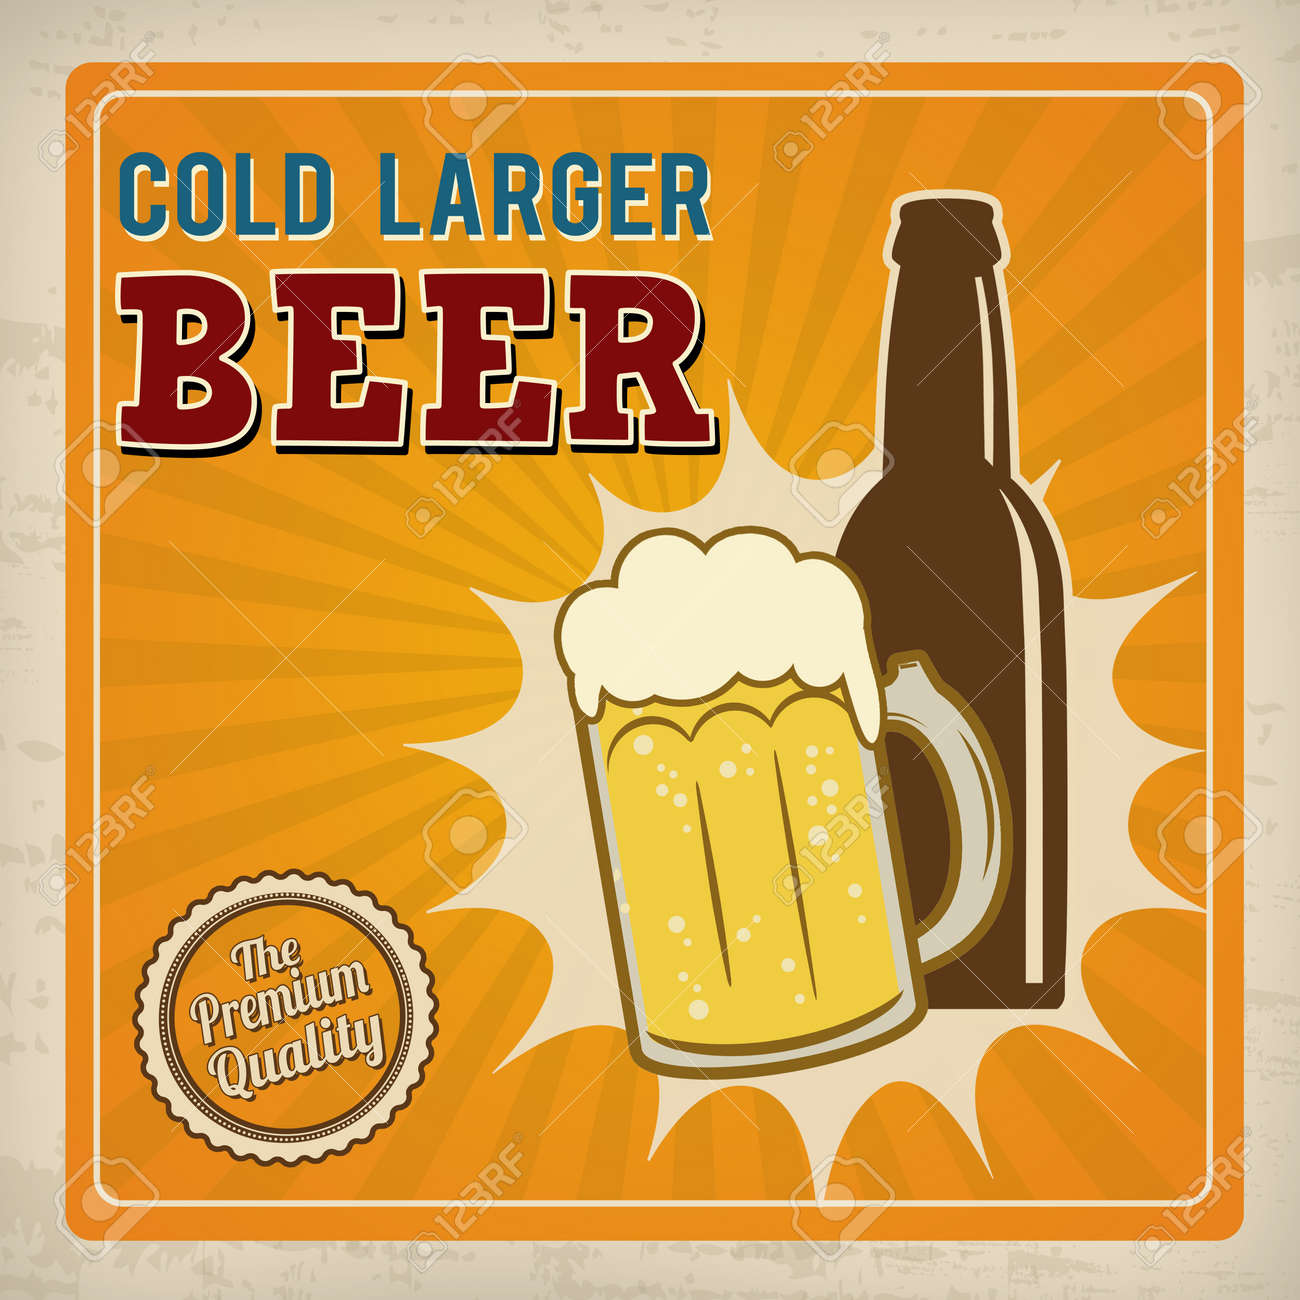 Cold Larger Beer Poster In Vintage Style Vector Illustration Stock